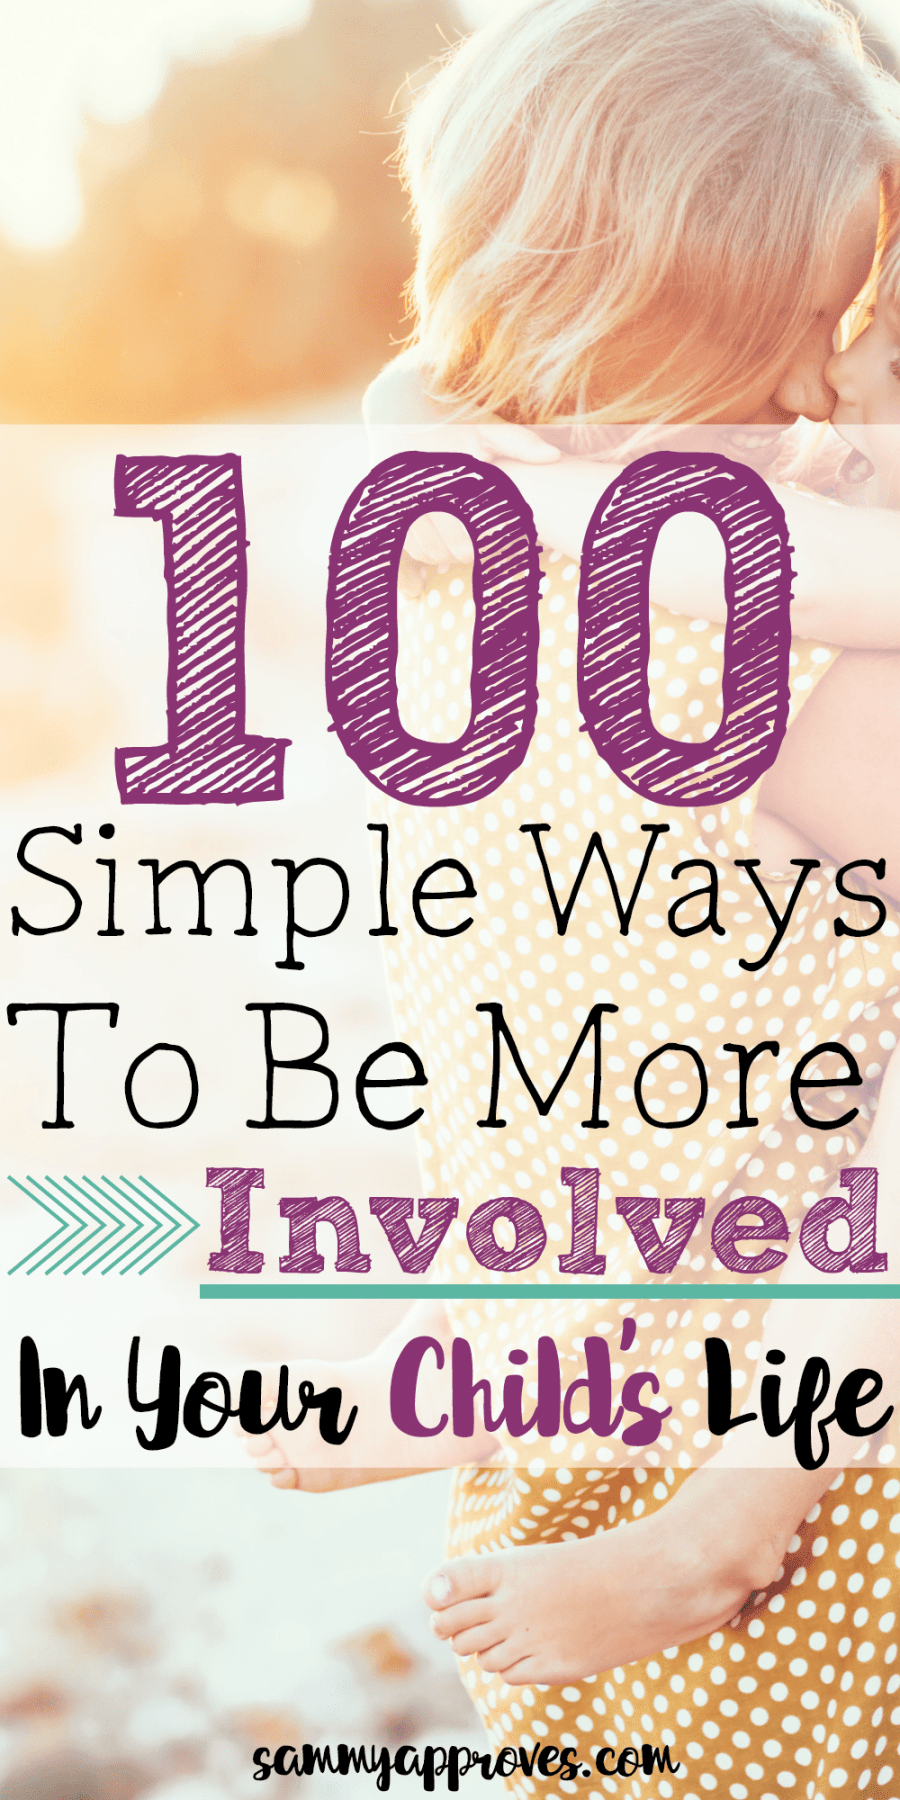 100 Simple Ways to be More Involved in Your Child's Life